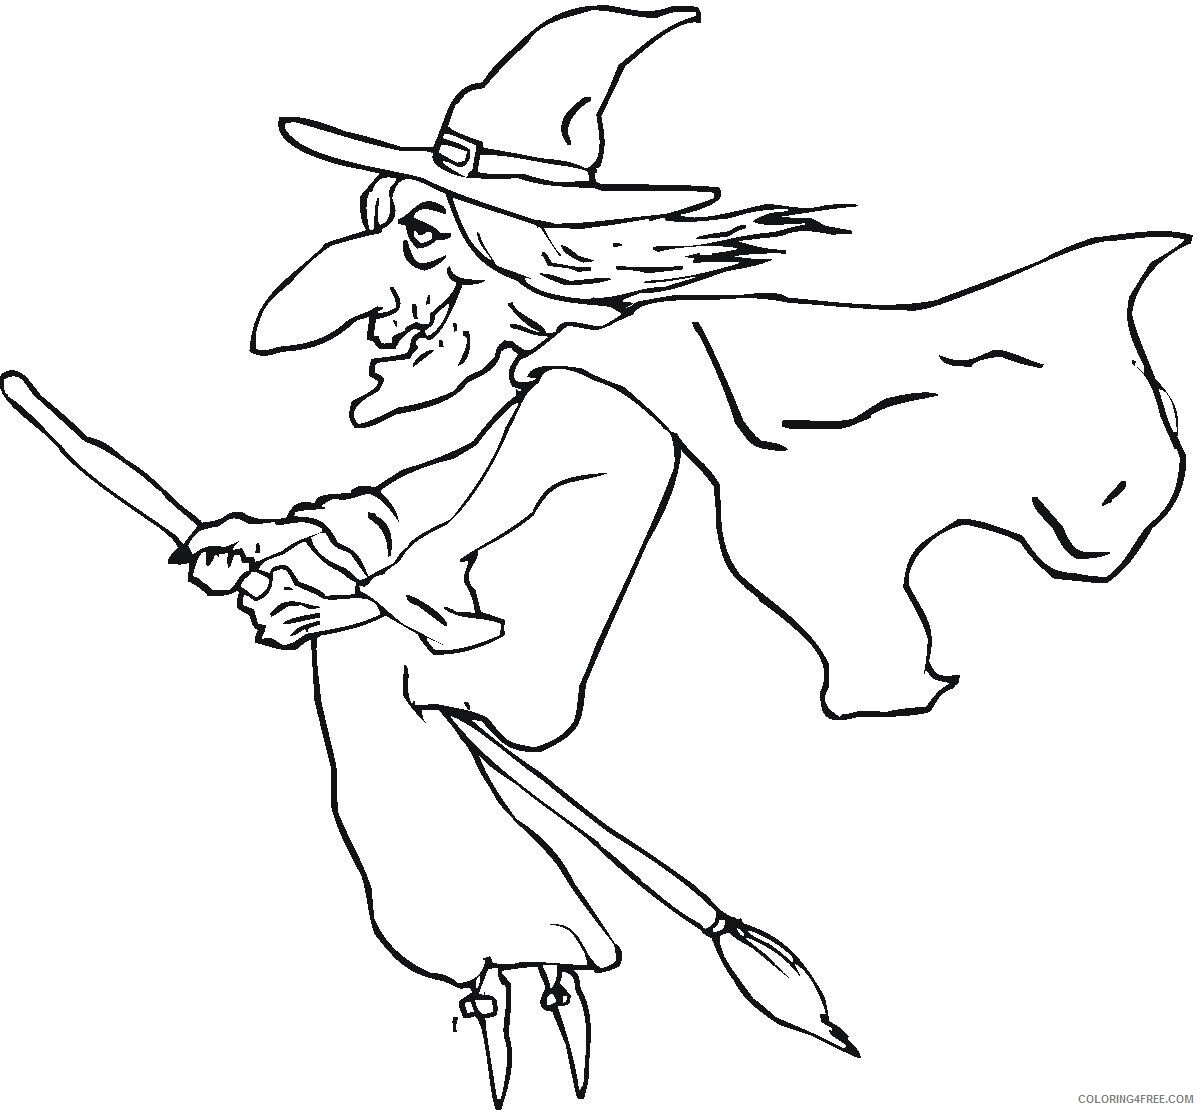 Witch Coloring Pages for Girls Witch For Kids Printable 2021 1432 Coloring4free